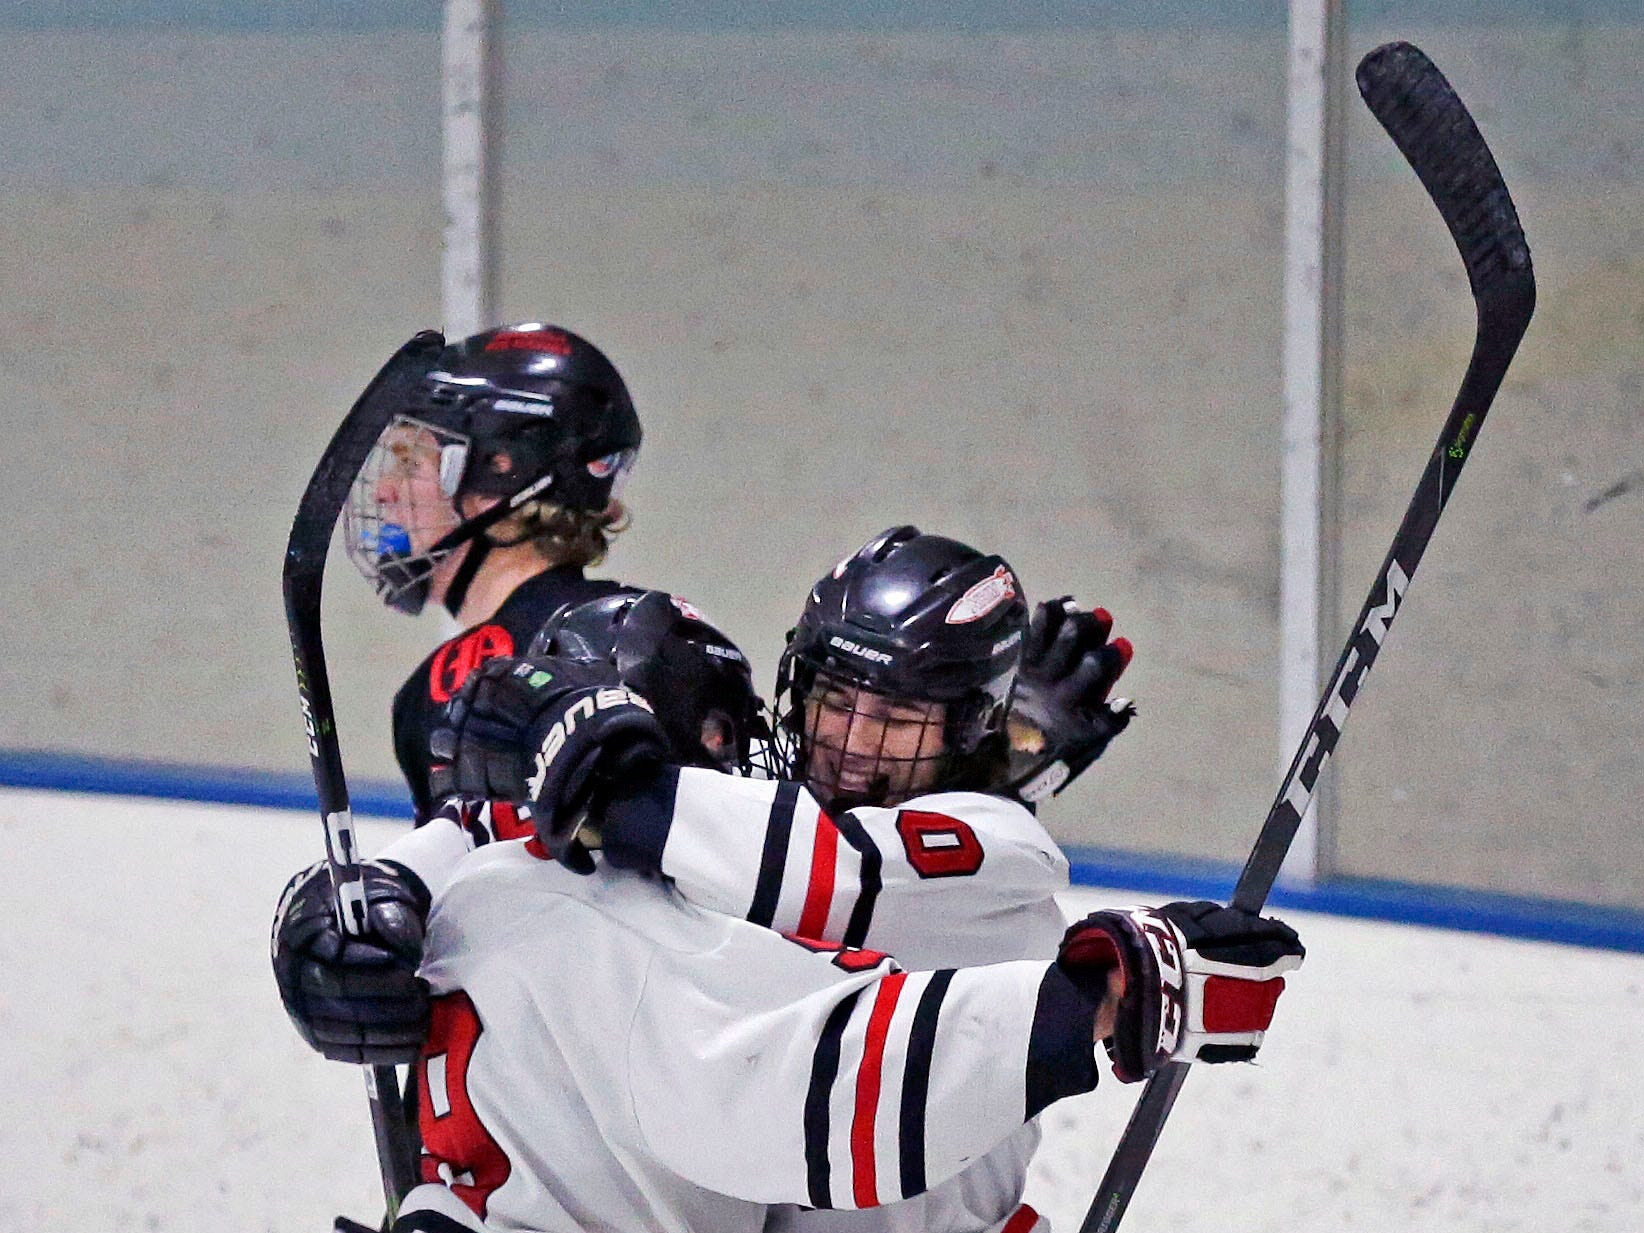 Dillon Fox and Cody Dias of Neenah/Hortonville/Menasha celebrate a goal against Oshkosh in a Badgerland Conference hockey game Tuesday, December 4, 2018, at Tri-County Ice Arena in Fox Crossing, Wis.